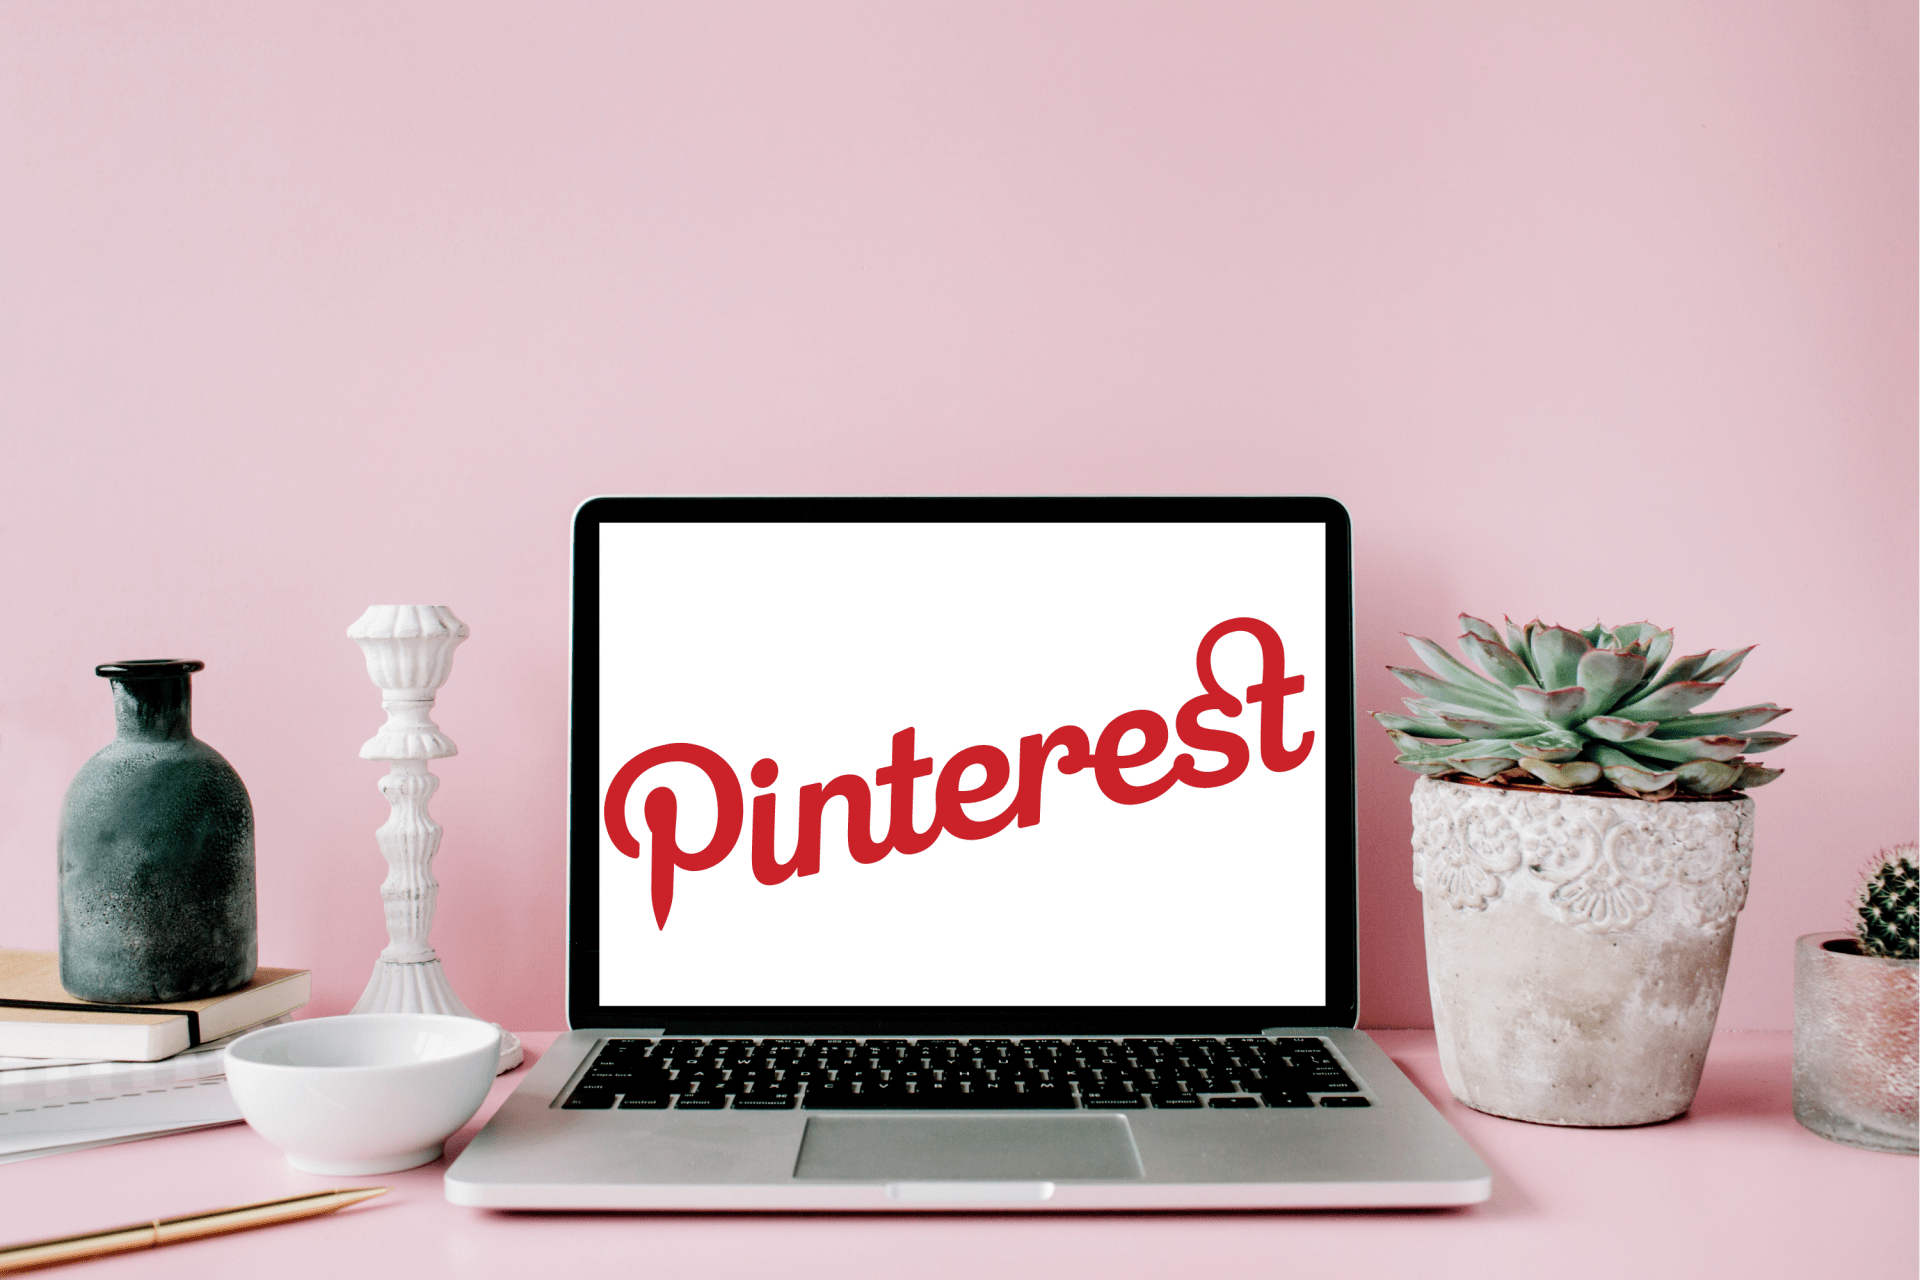 The Best (and Affordable) Pinterest Course for New Bloggers – A review of Ell Duclos' Pinterest course